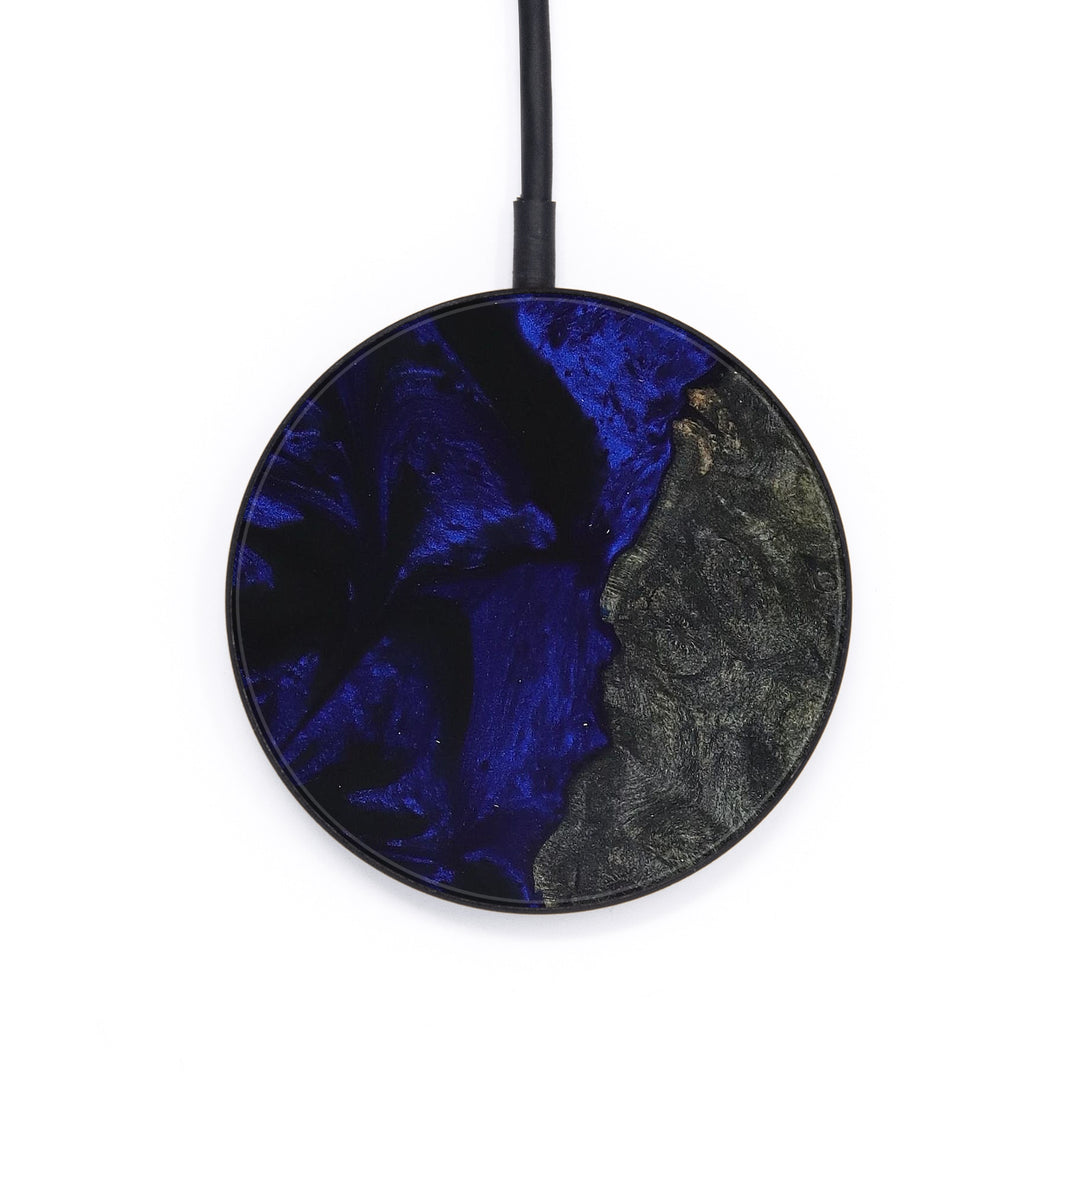 Circle Wood+Resin Wireless Charger - Faun (Dark Blue, 393337)